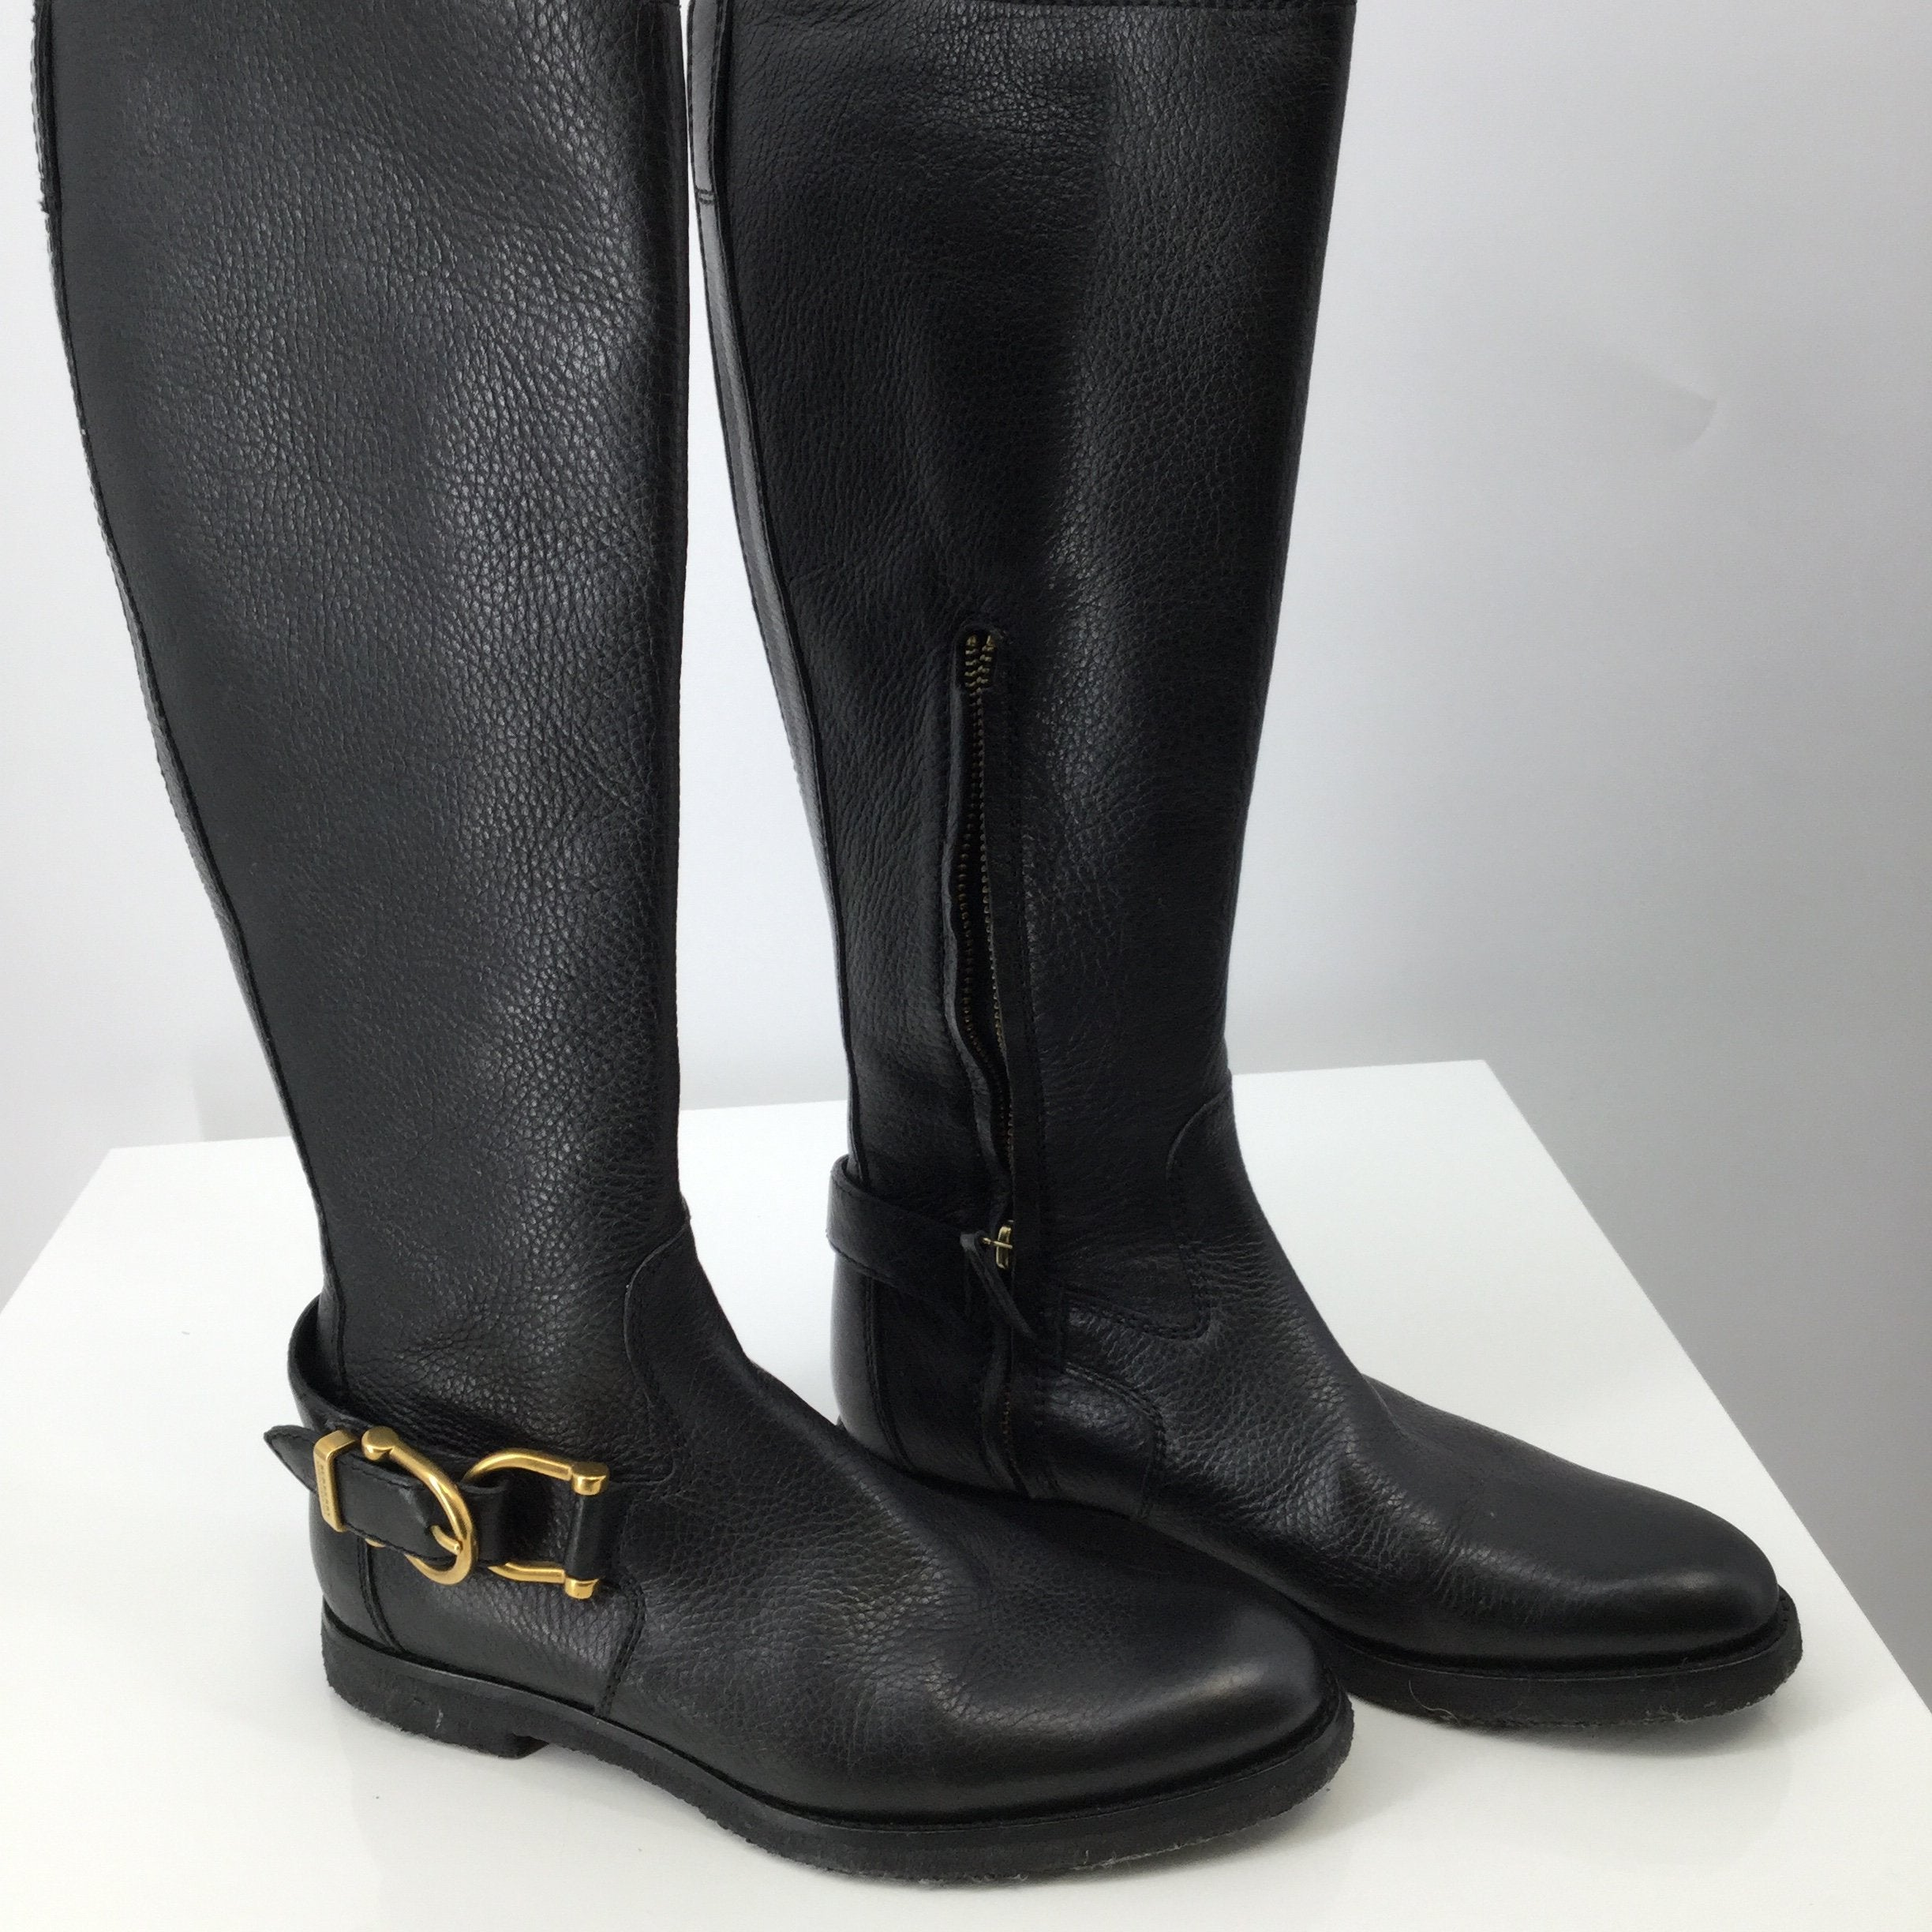 Burberry Black Leather Boots Leather Lining Size 6.5 - <P>LOOK LUXURIOUS WITH THIS HIGH QUALITY BURBERRY BLACK LEATHER BOOTS. LEATHER INTERIOR. HITS JUST BELOW THE KNEE. HAS A GOLD BUCKLE AT THE ANKLE. LIKE NEW CONDITION. LIGHT FIBERS ON SOLE OF THE SHOE. PEBBLED SOLE. SERIAL NUMBER ITCON30LUN. SIZE 6.5 US SIZE 37 EU</P>